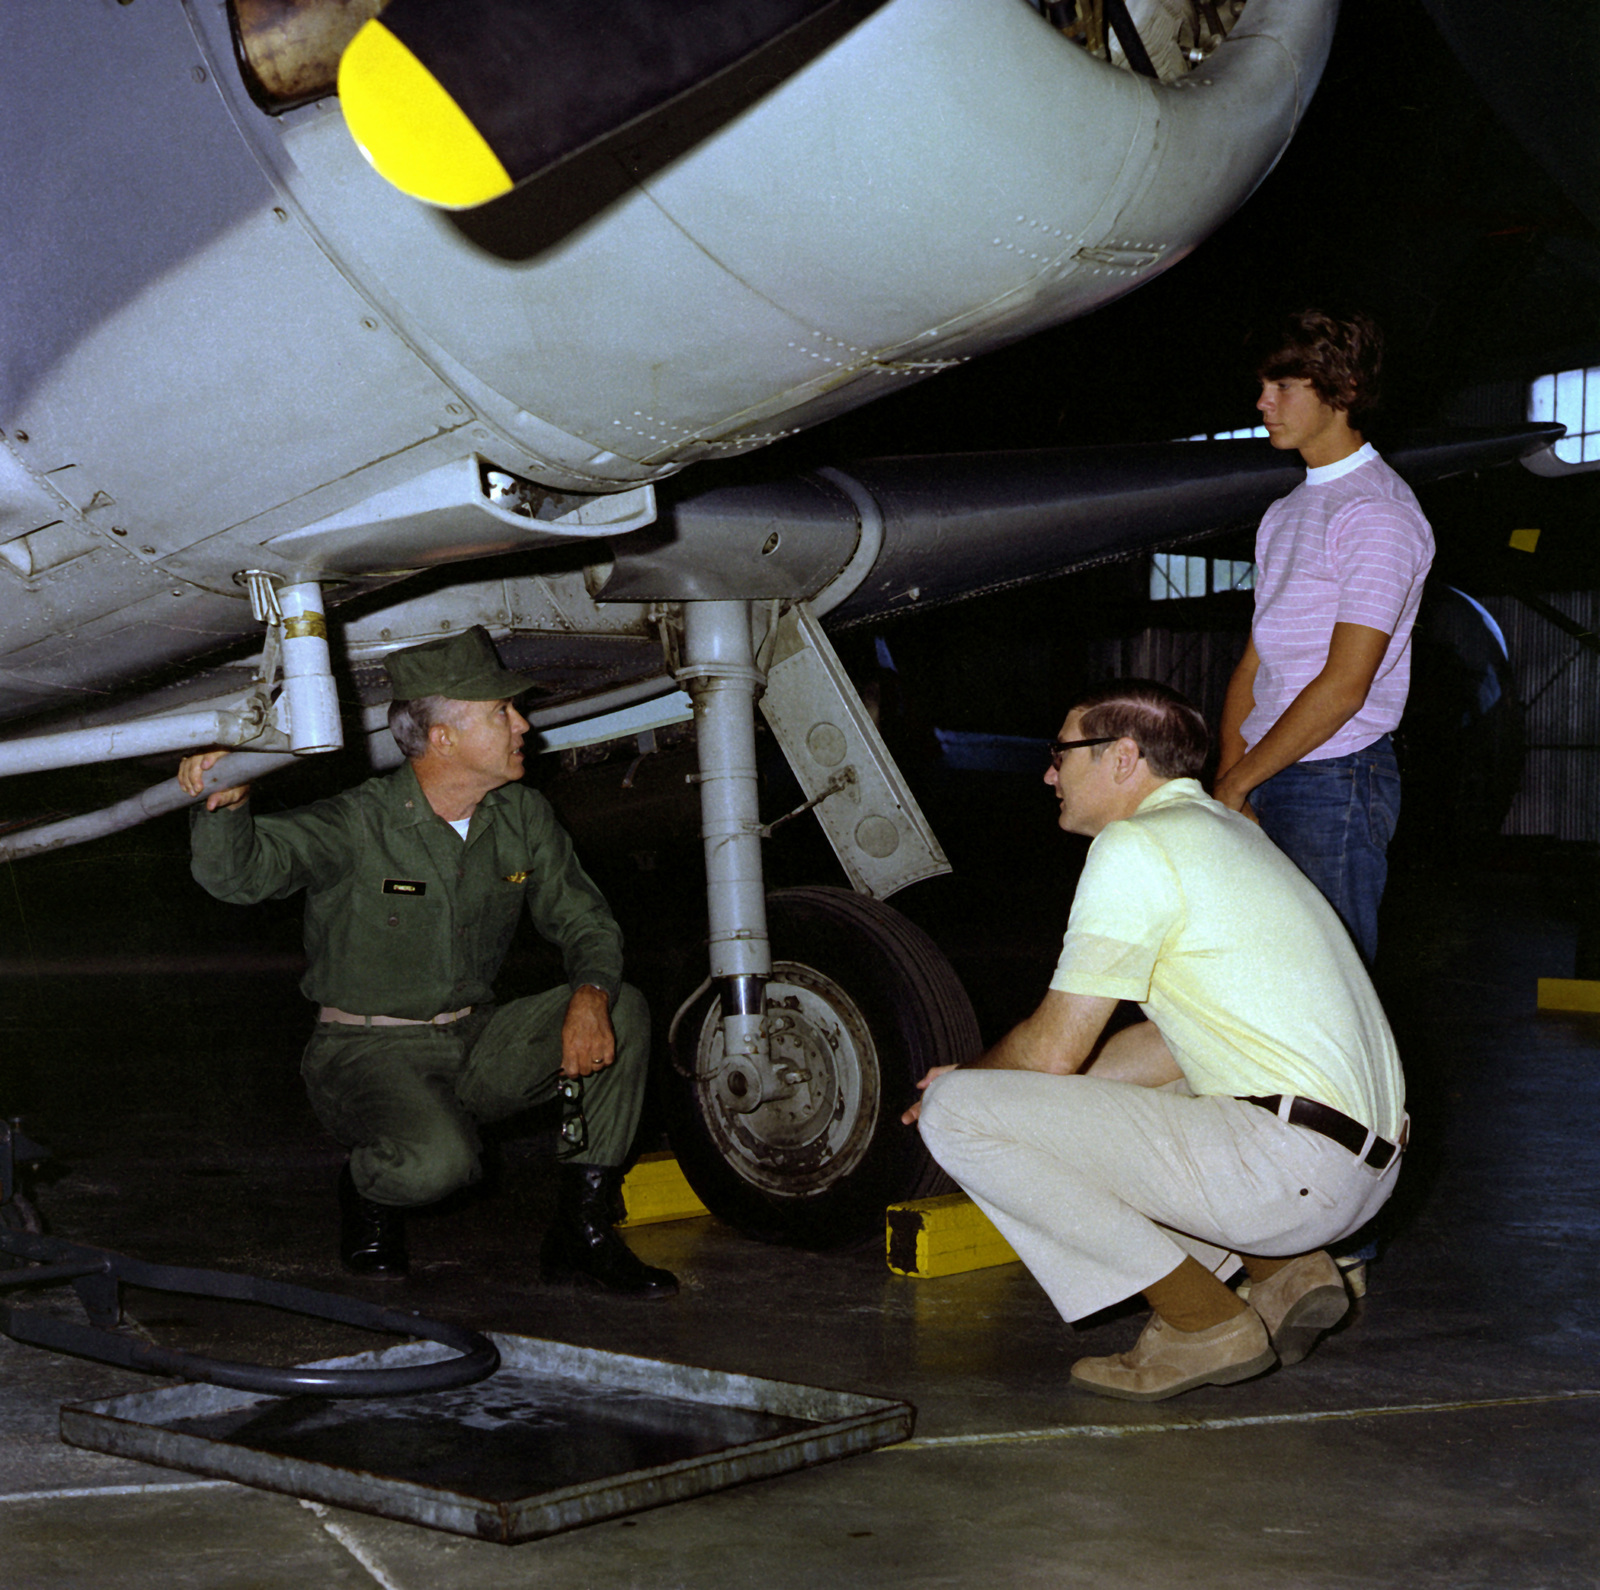 COL T.M. D'Andrea, left, explains an aircraft to Assistant Secretary of the Navy G.D. Penisten and his son, Noel, during their visit to the Marine Corps Air Museum at the Marine Corps Development and Education Command